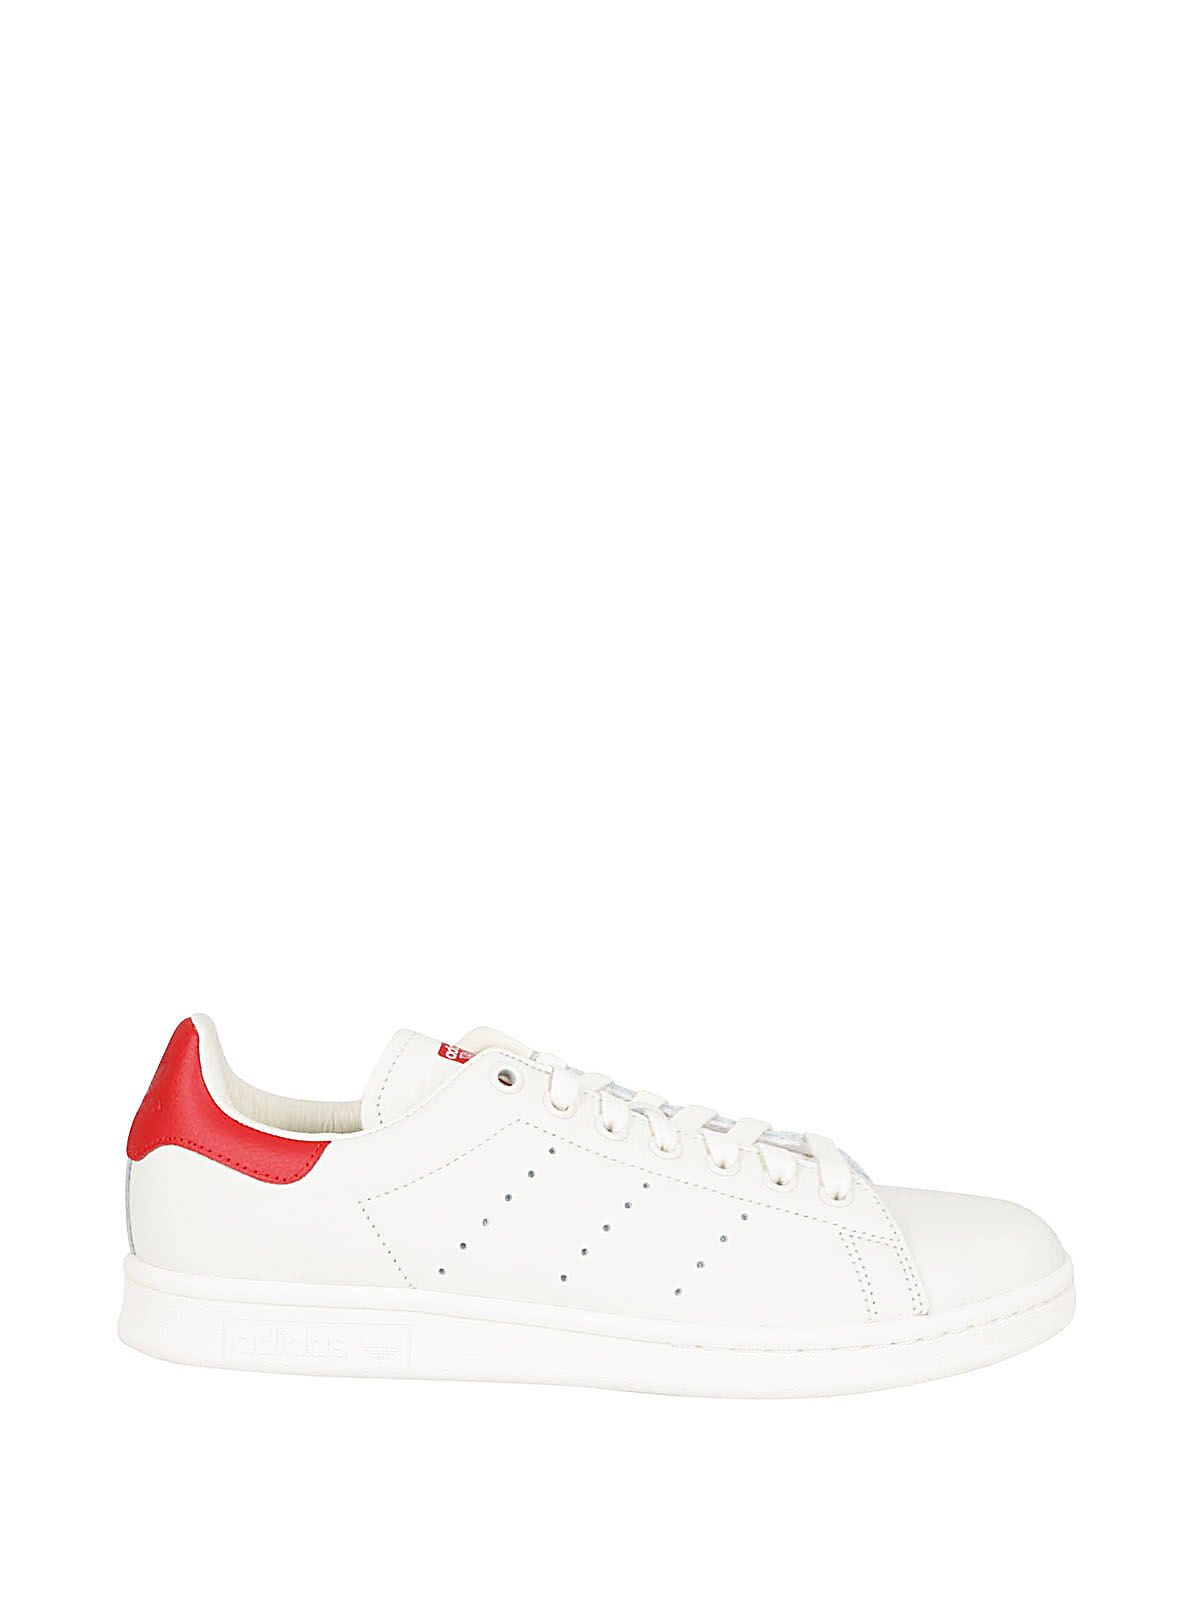 online retailer d9fd9 bb1a4 Adidas Originals Adidas Stan Smith Sneakers - Bianco rosso ...